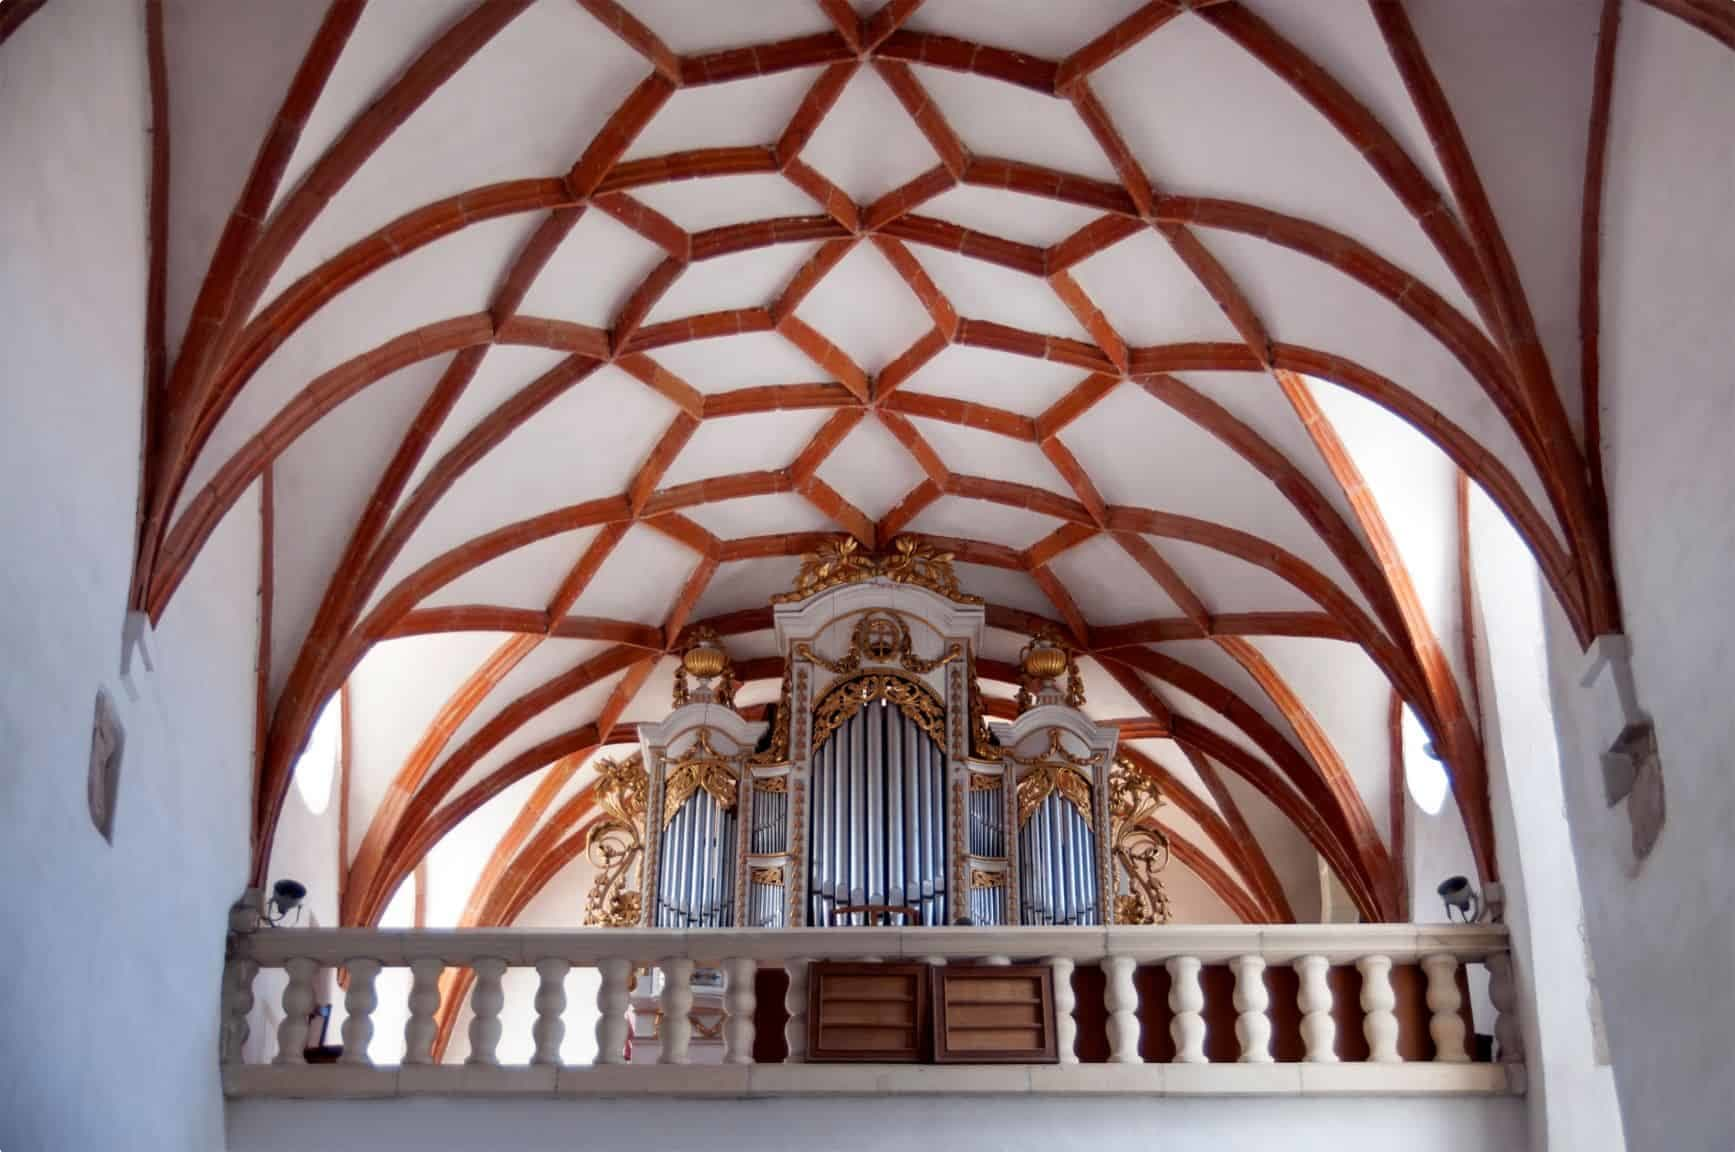 Organ and detail of the Gothic ceiling in fortified church of Prejmer, Transylvania, Romania